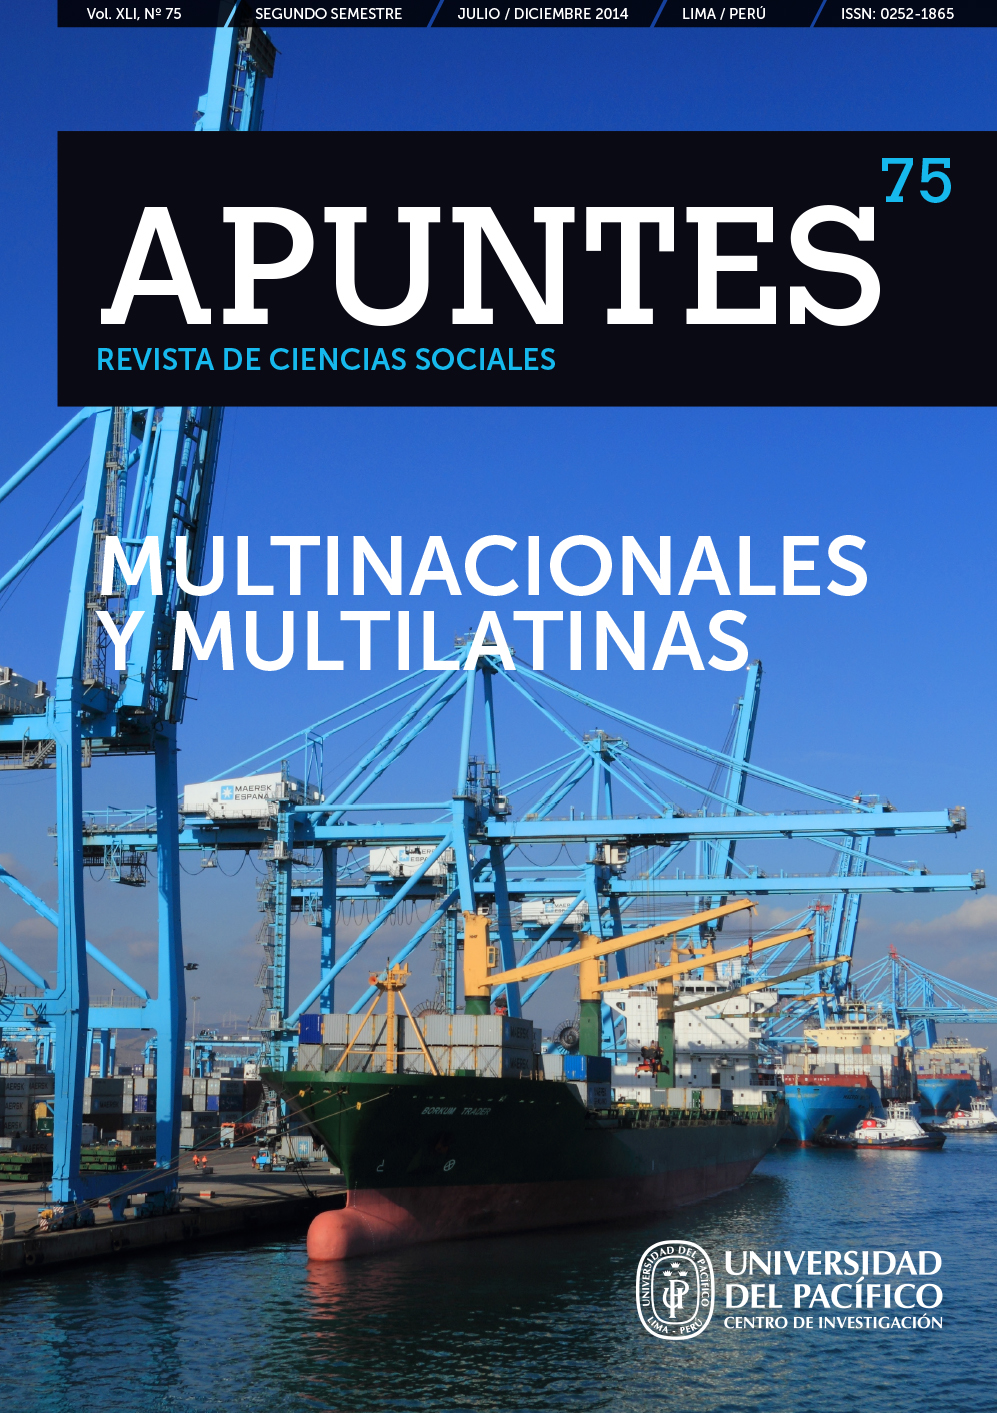 Revista Apuntes 75 - Multinacionales y multilatinas